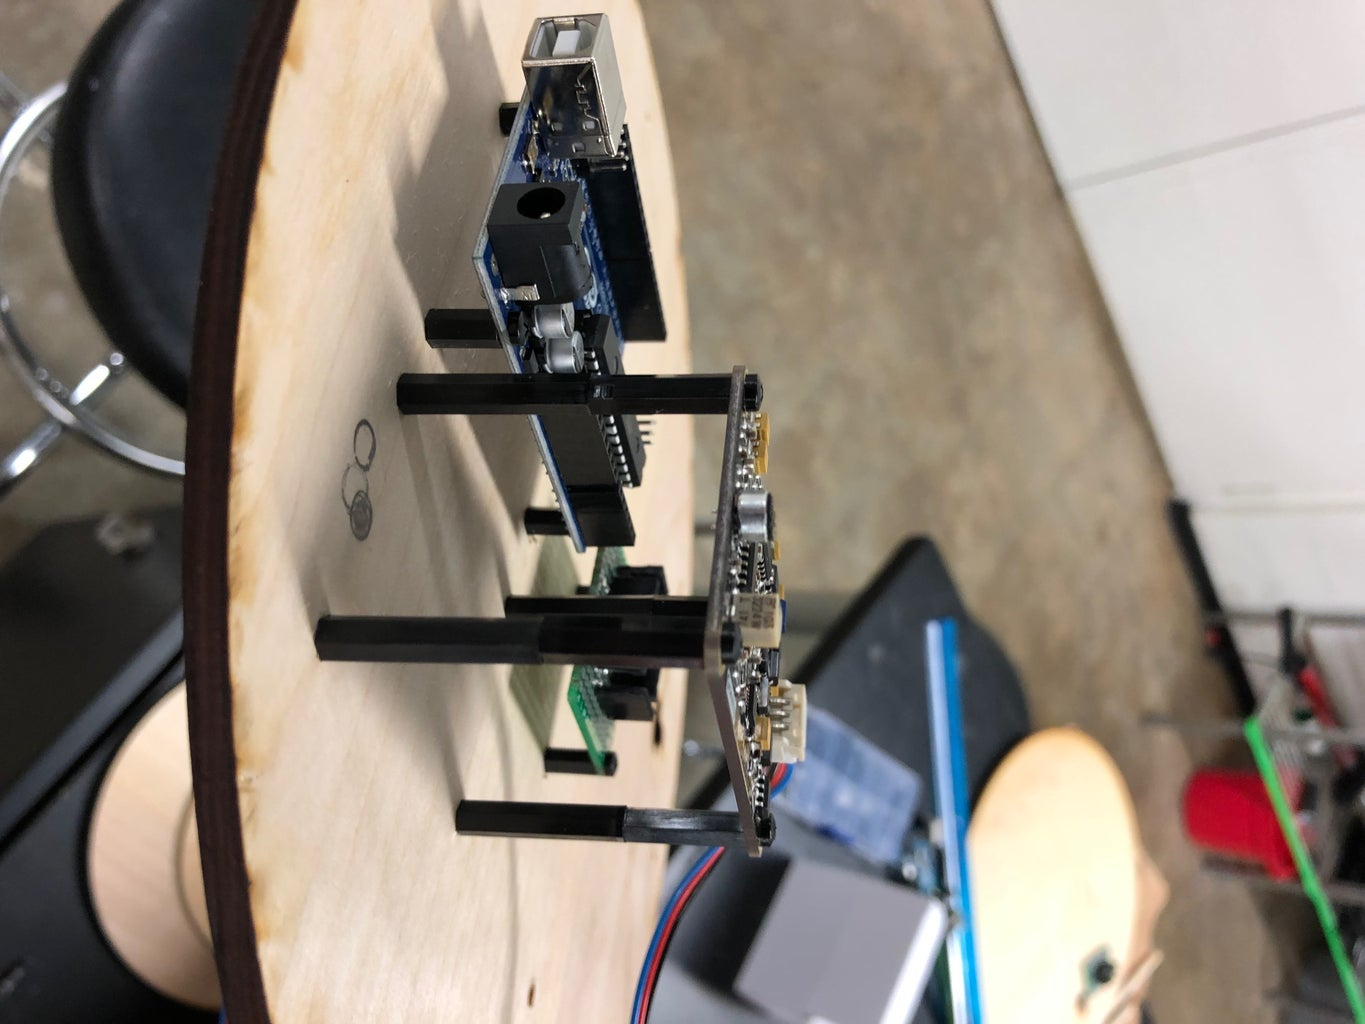 Mount the Electronics Boards to the Wood Casing